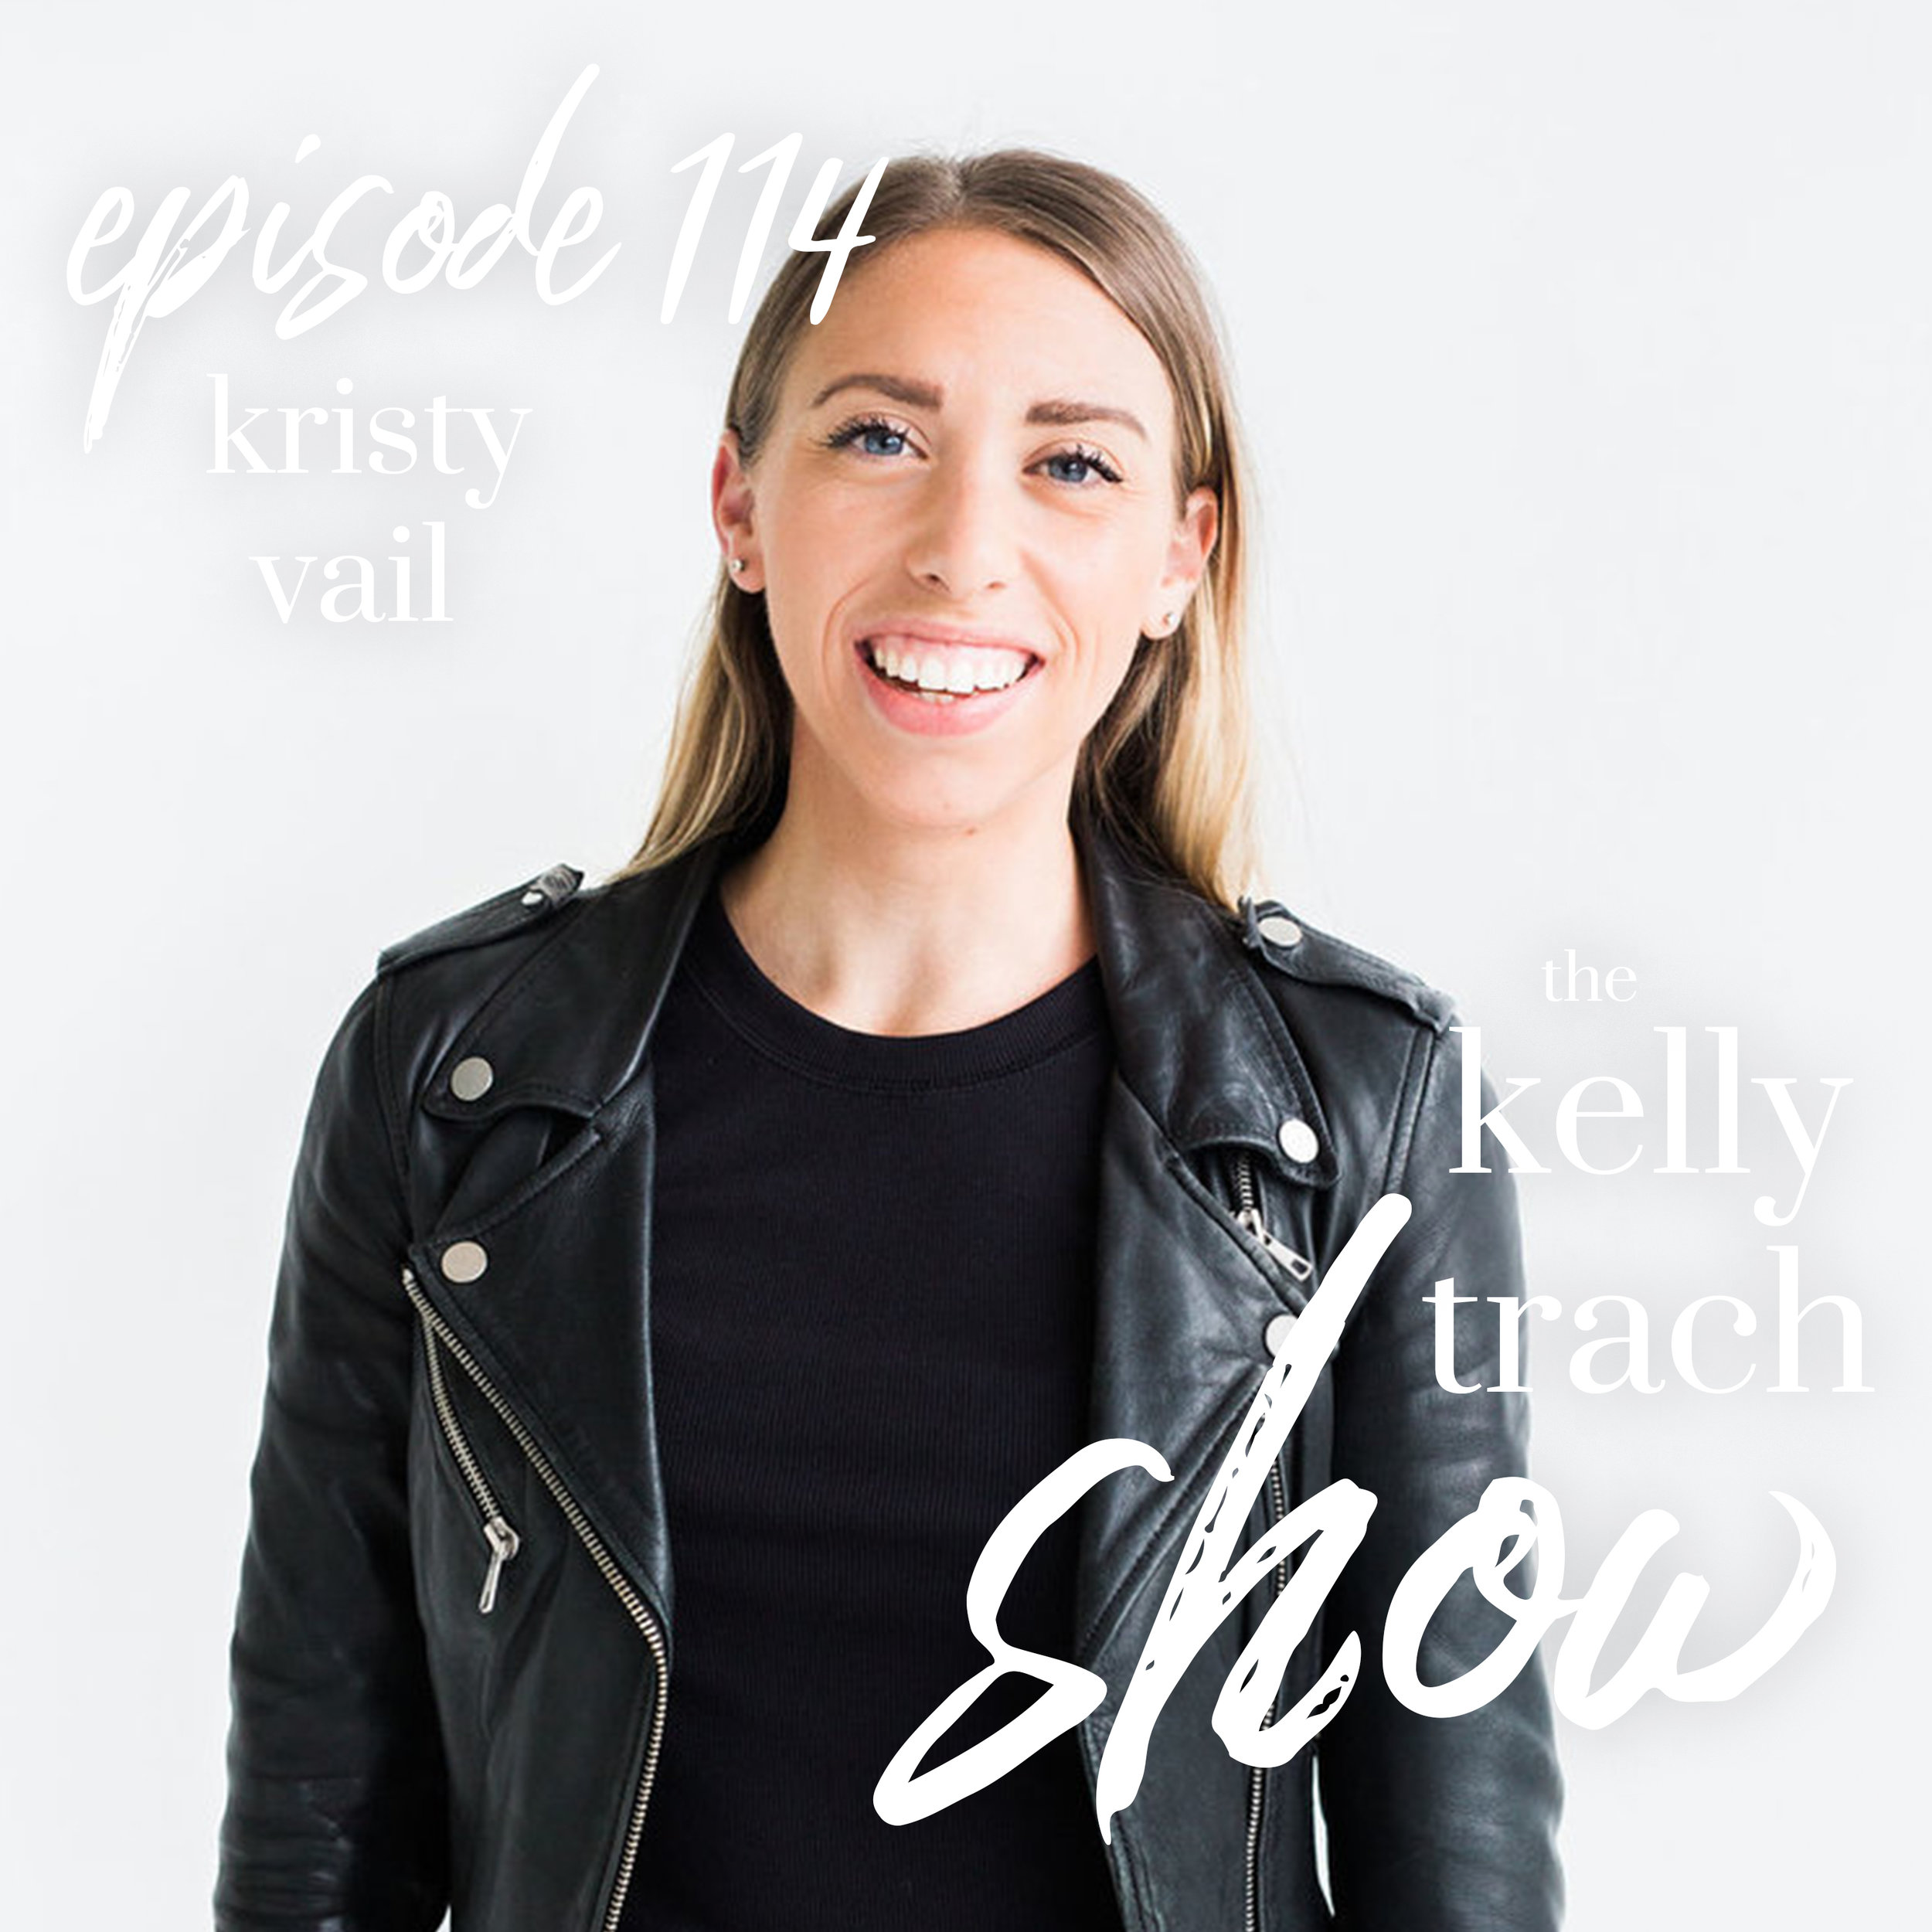 114 Kristy Vail On How She Out-Earned Her Corporate Salary with her Digital Biz The Kelly Trach Show Podcast.jpg